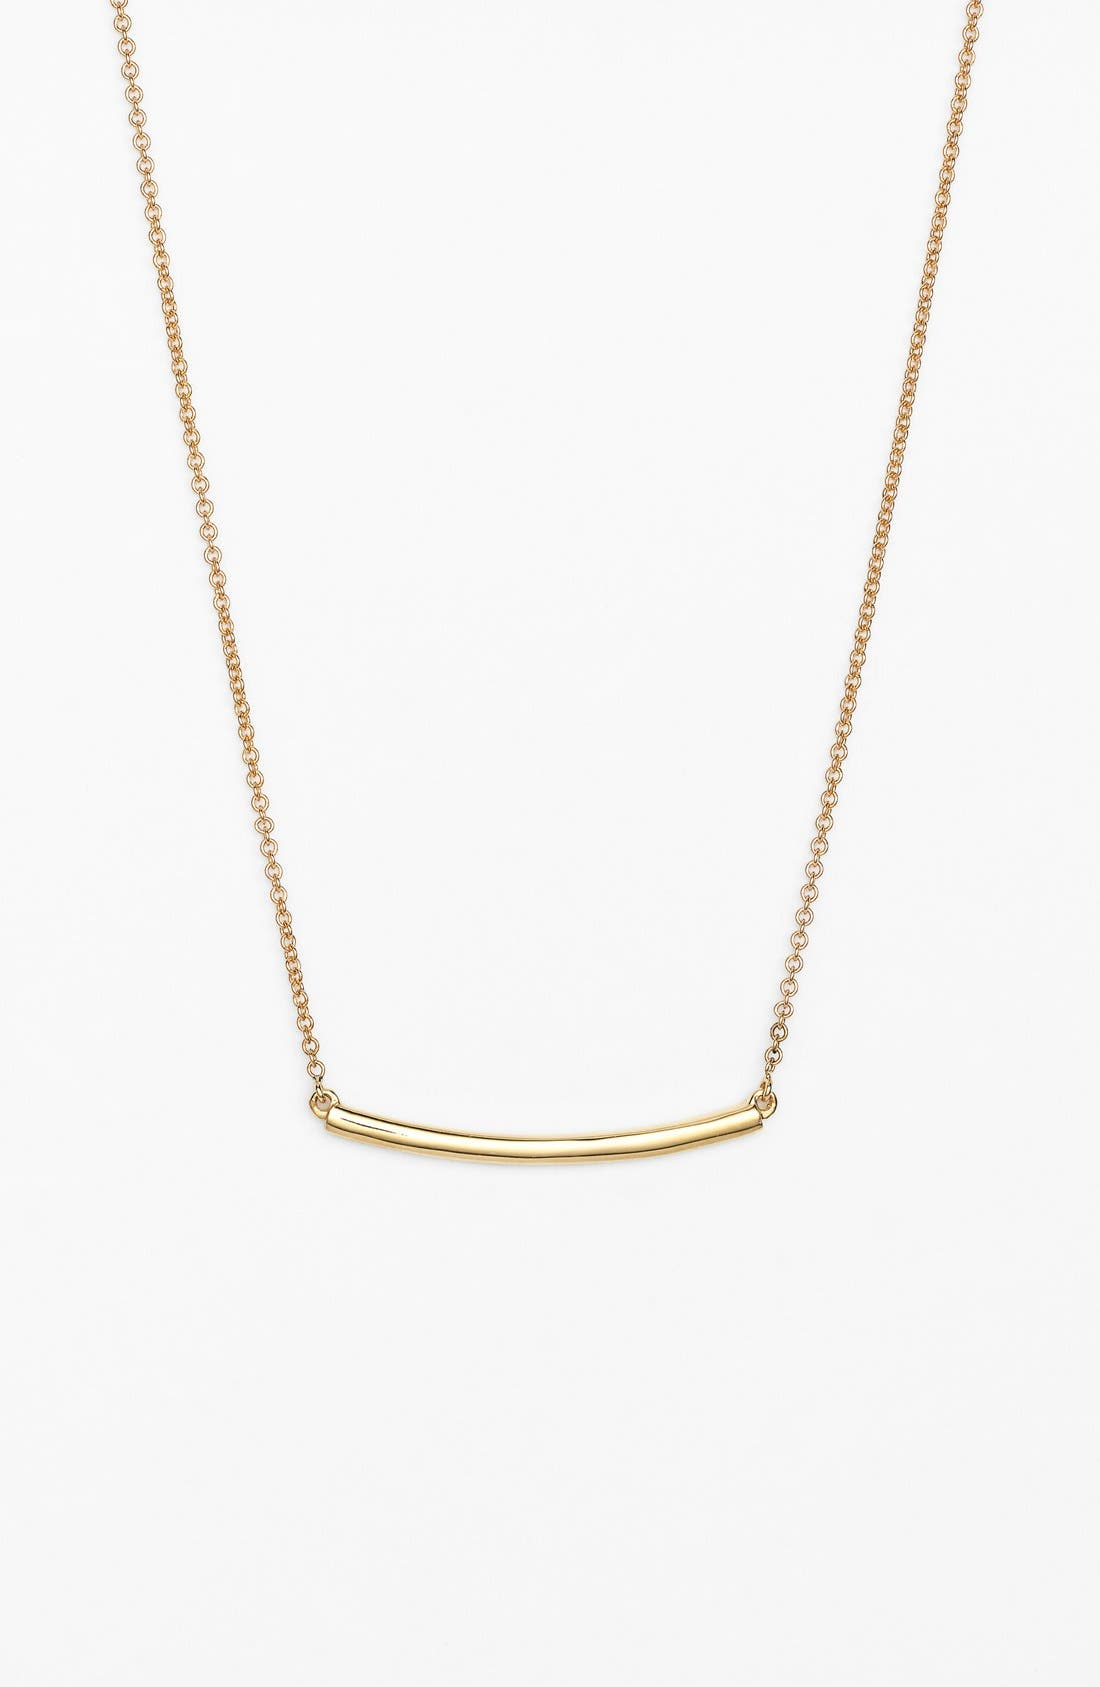 Bar Pendant Necklace,                             Main thumbnail 1, color,                             YELLOW GOLD